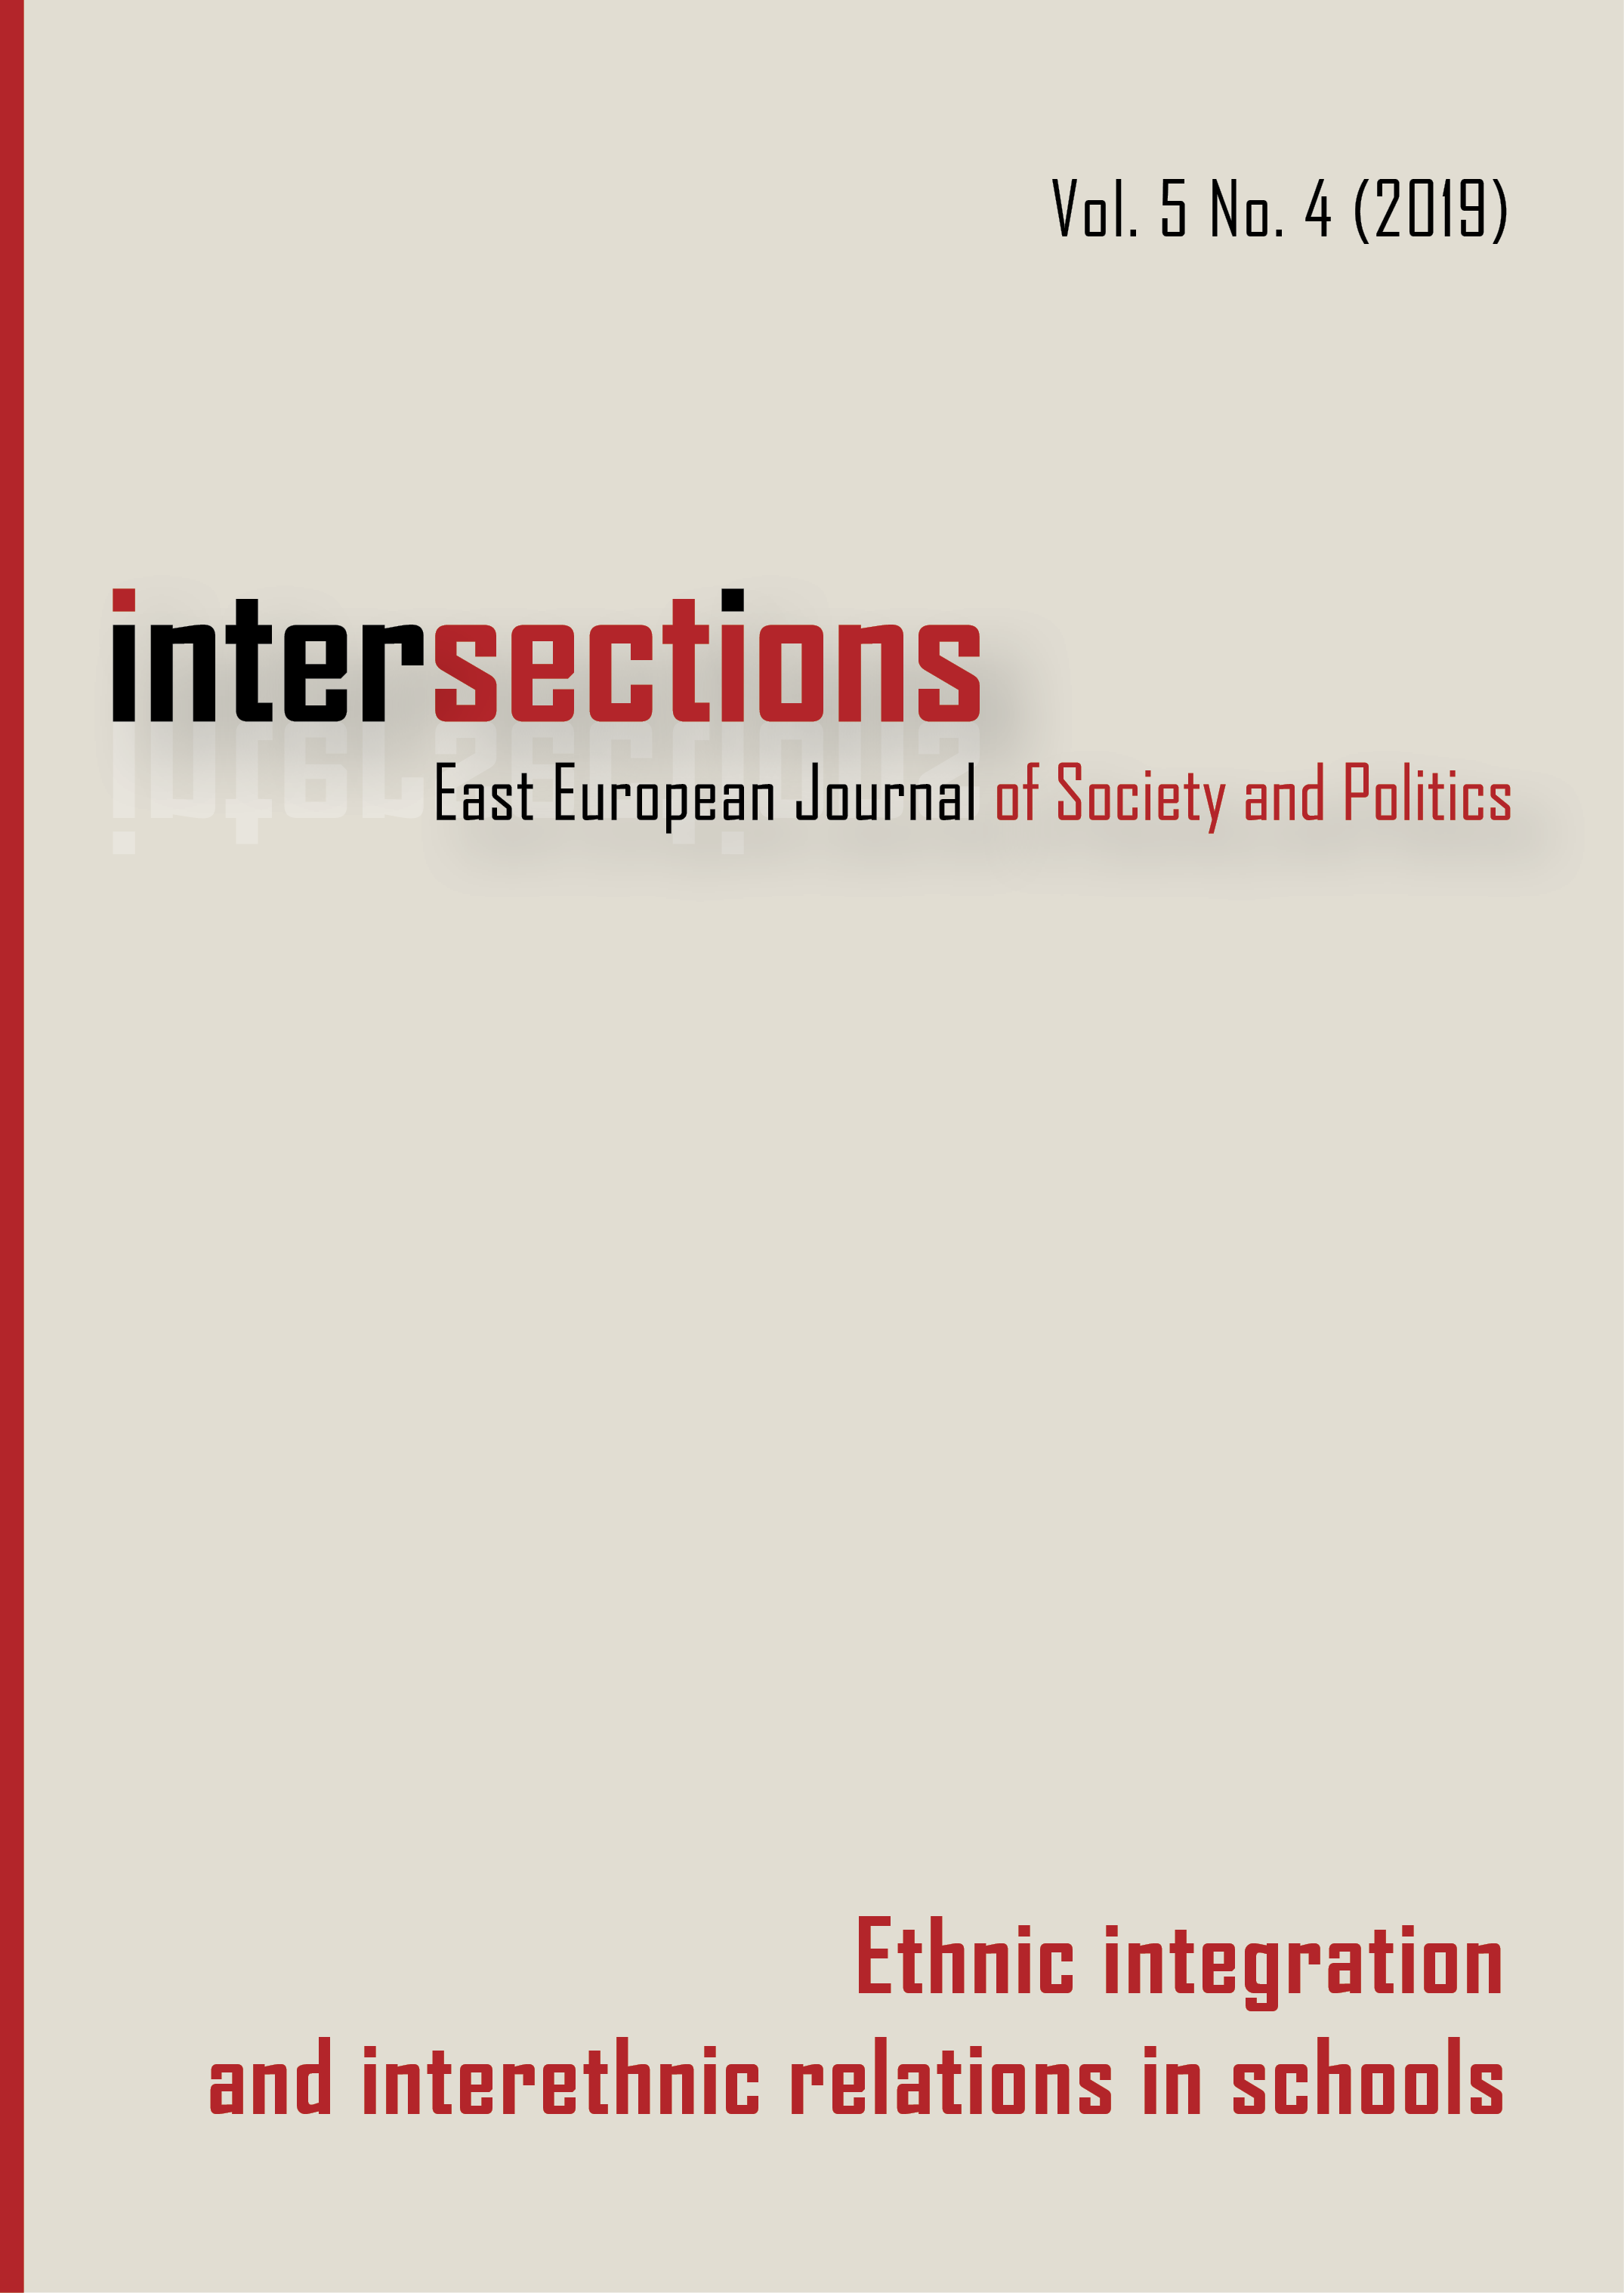 View Vol. 5 No. 4 (2019): Ethnic Integration and Interethnic Relations in Schools